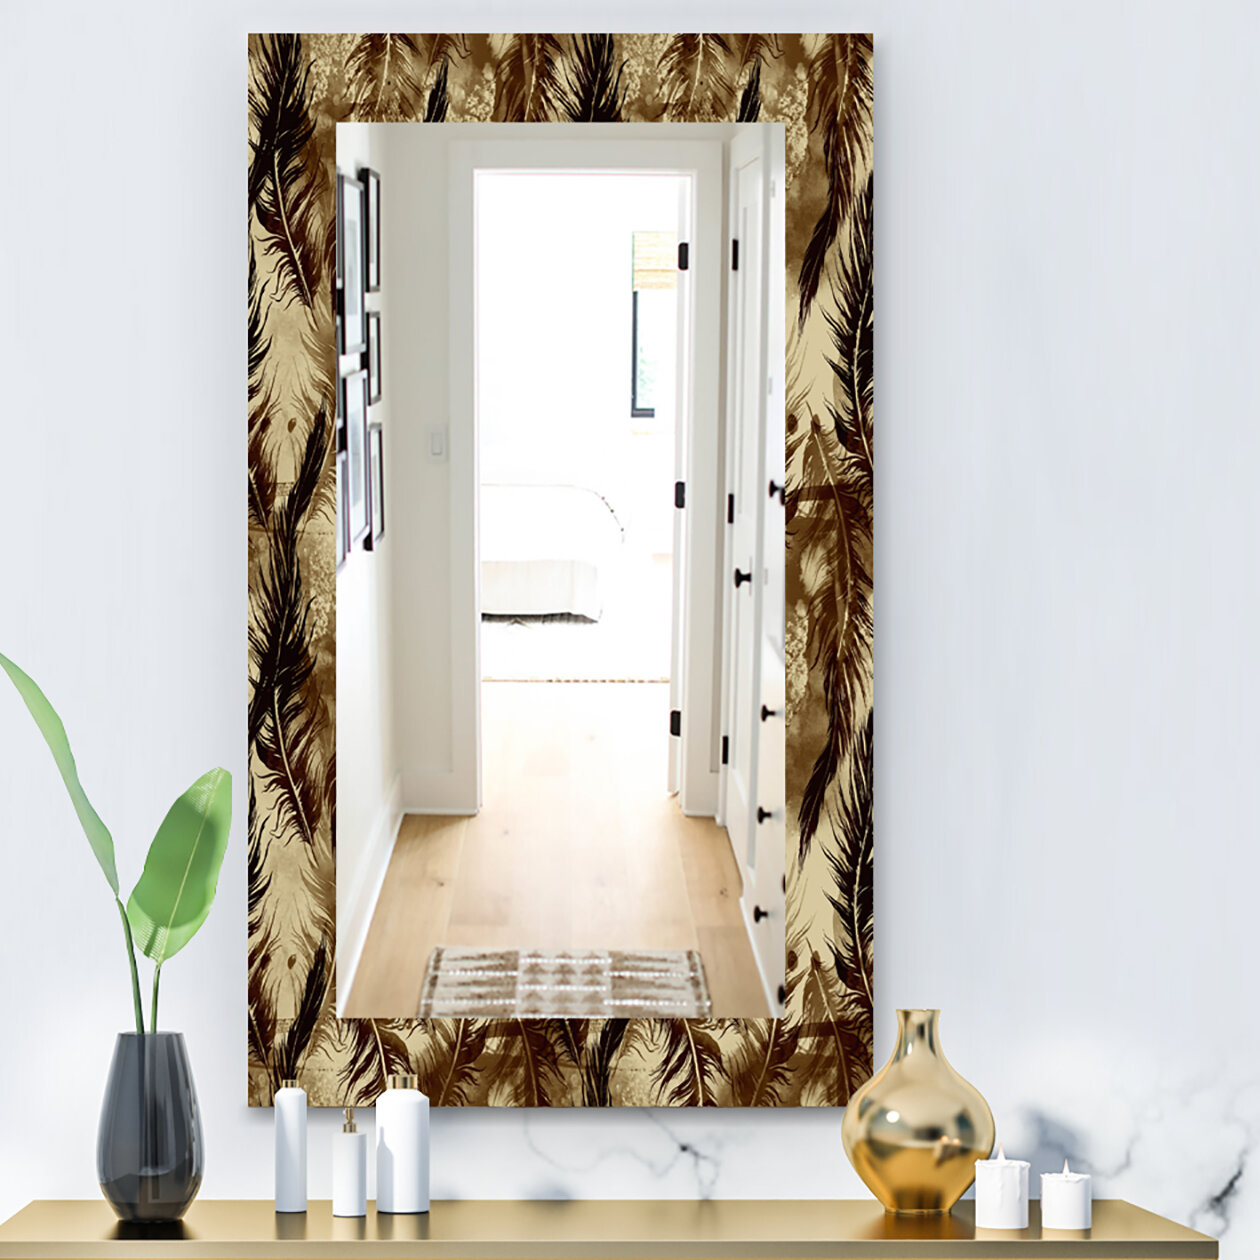 East Urban Home Feathers 15 Bohemian And Eclectic Frameless Bathroom Vanity Mirror Wayfair